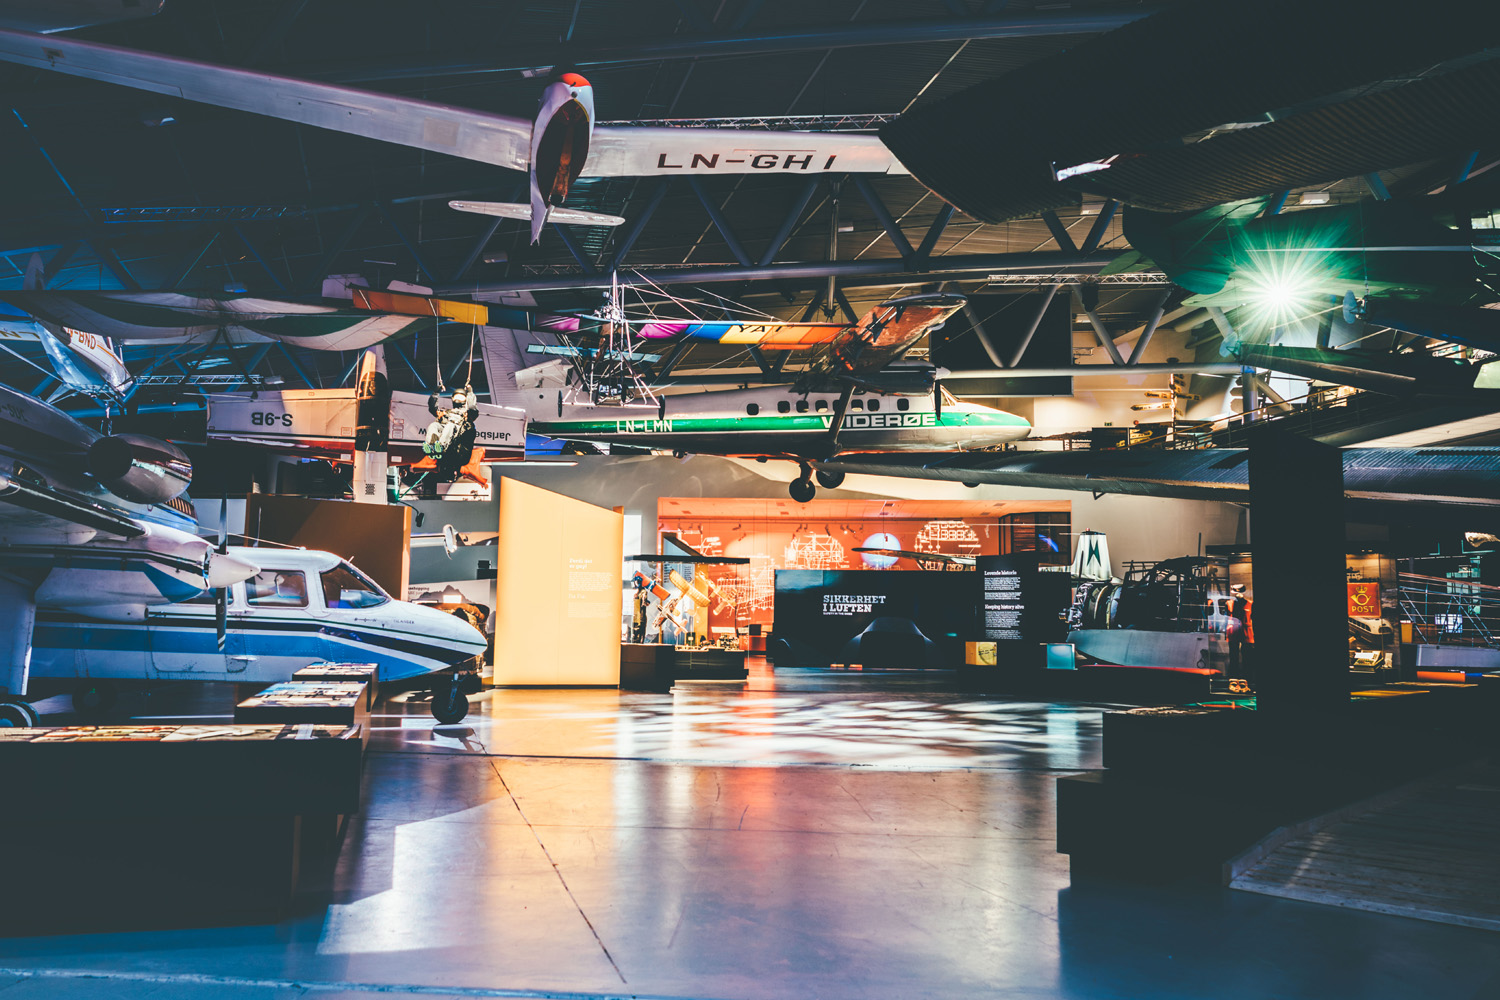 The Norsk Luftfartsmuseum explores how the development of civilian flight revolutionised Norway by connecting people in remote and isolated regions to the rest of the world.